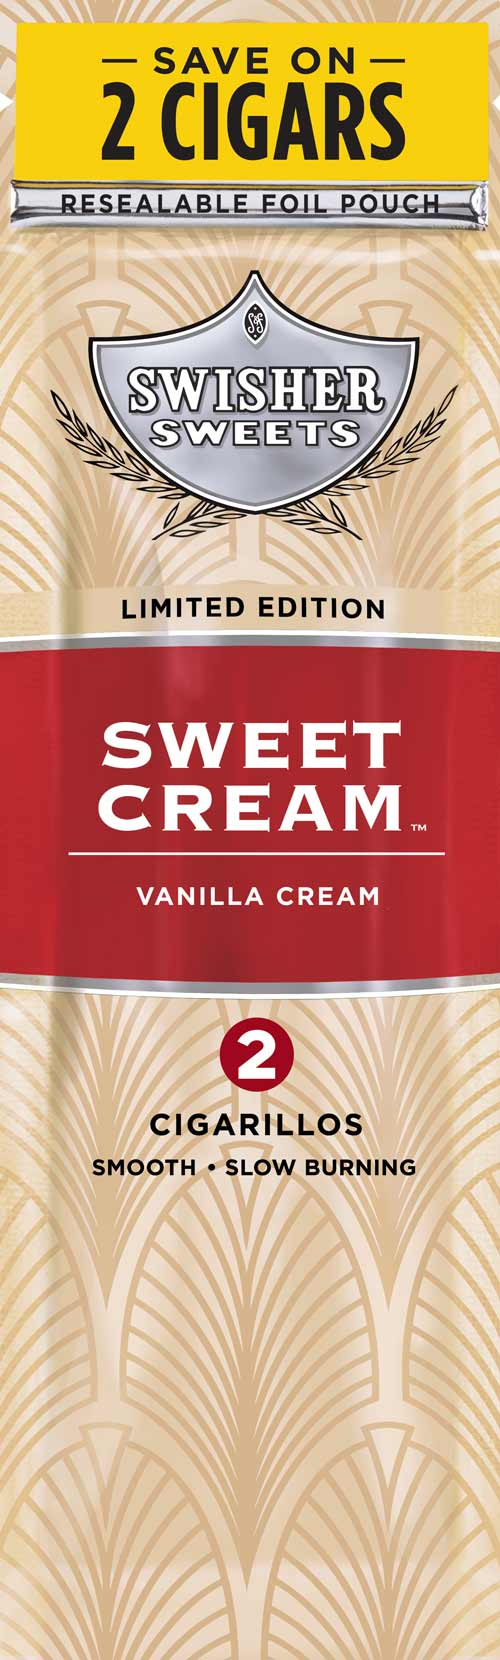 Limited Edition - Sweet Cream